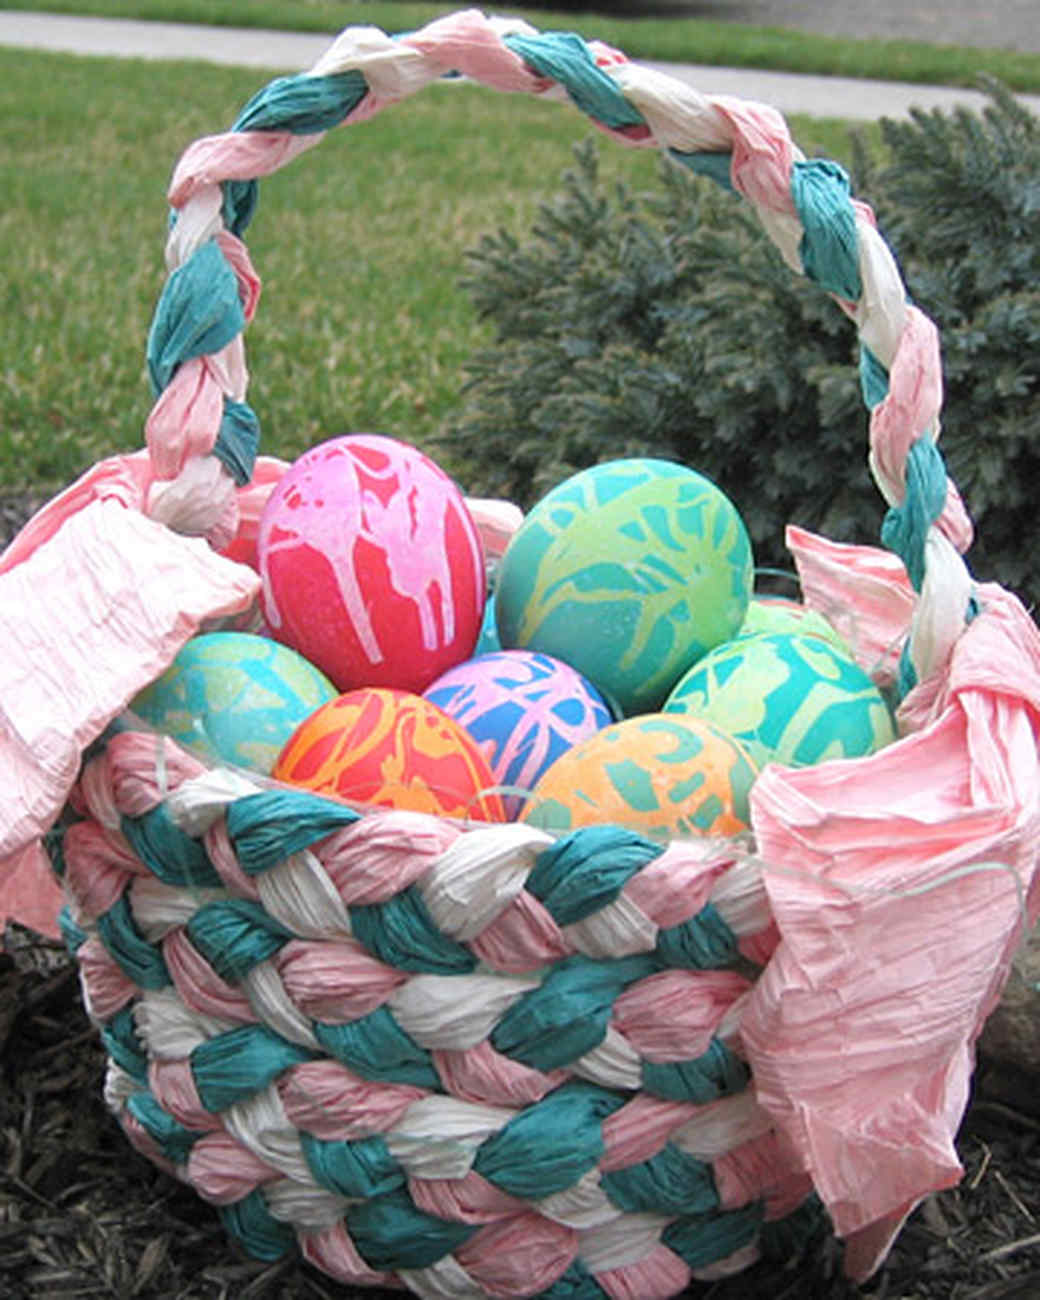 ew_march08_easter_eggs0002.jpg